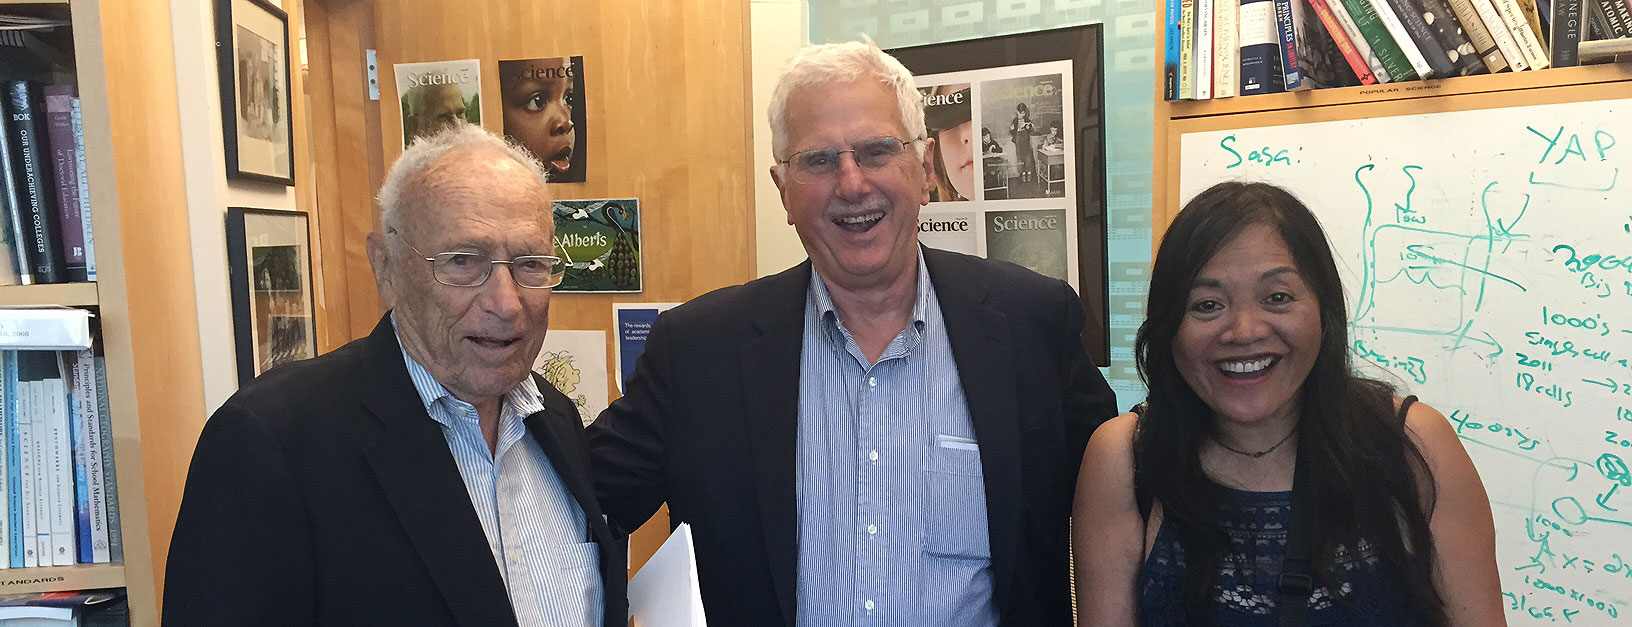 Dr. Alberts being interviewed by the San Francisco Chronicle's David Perlman, with photographer Liz Hafalia, 2015.